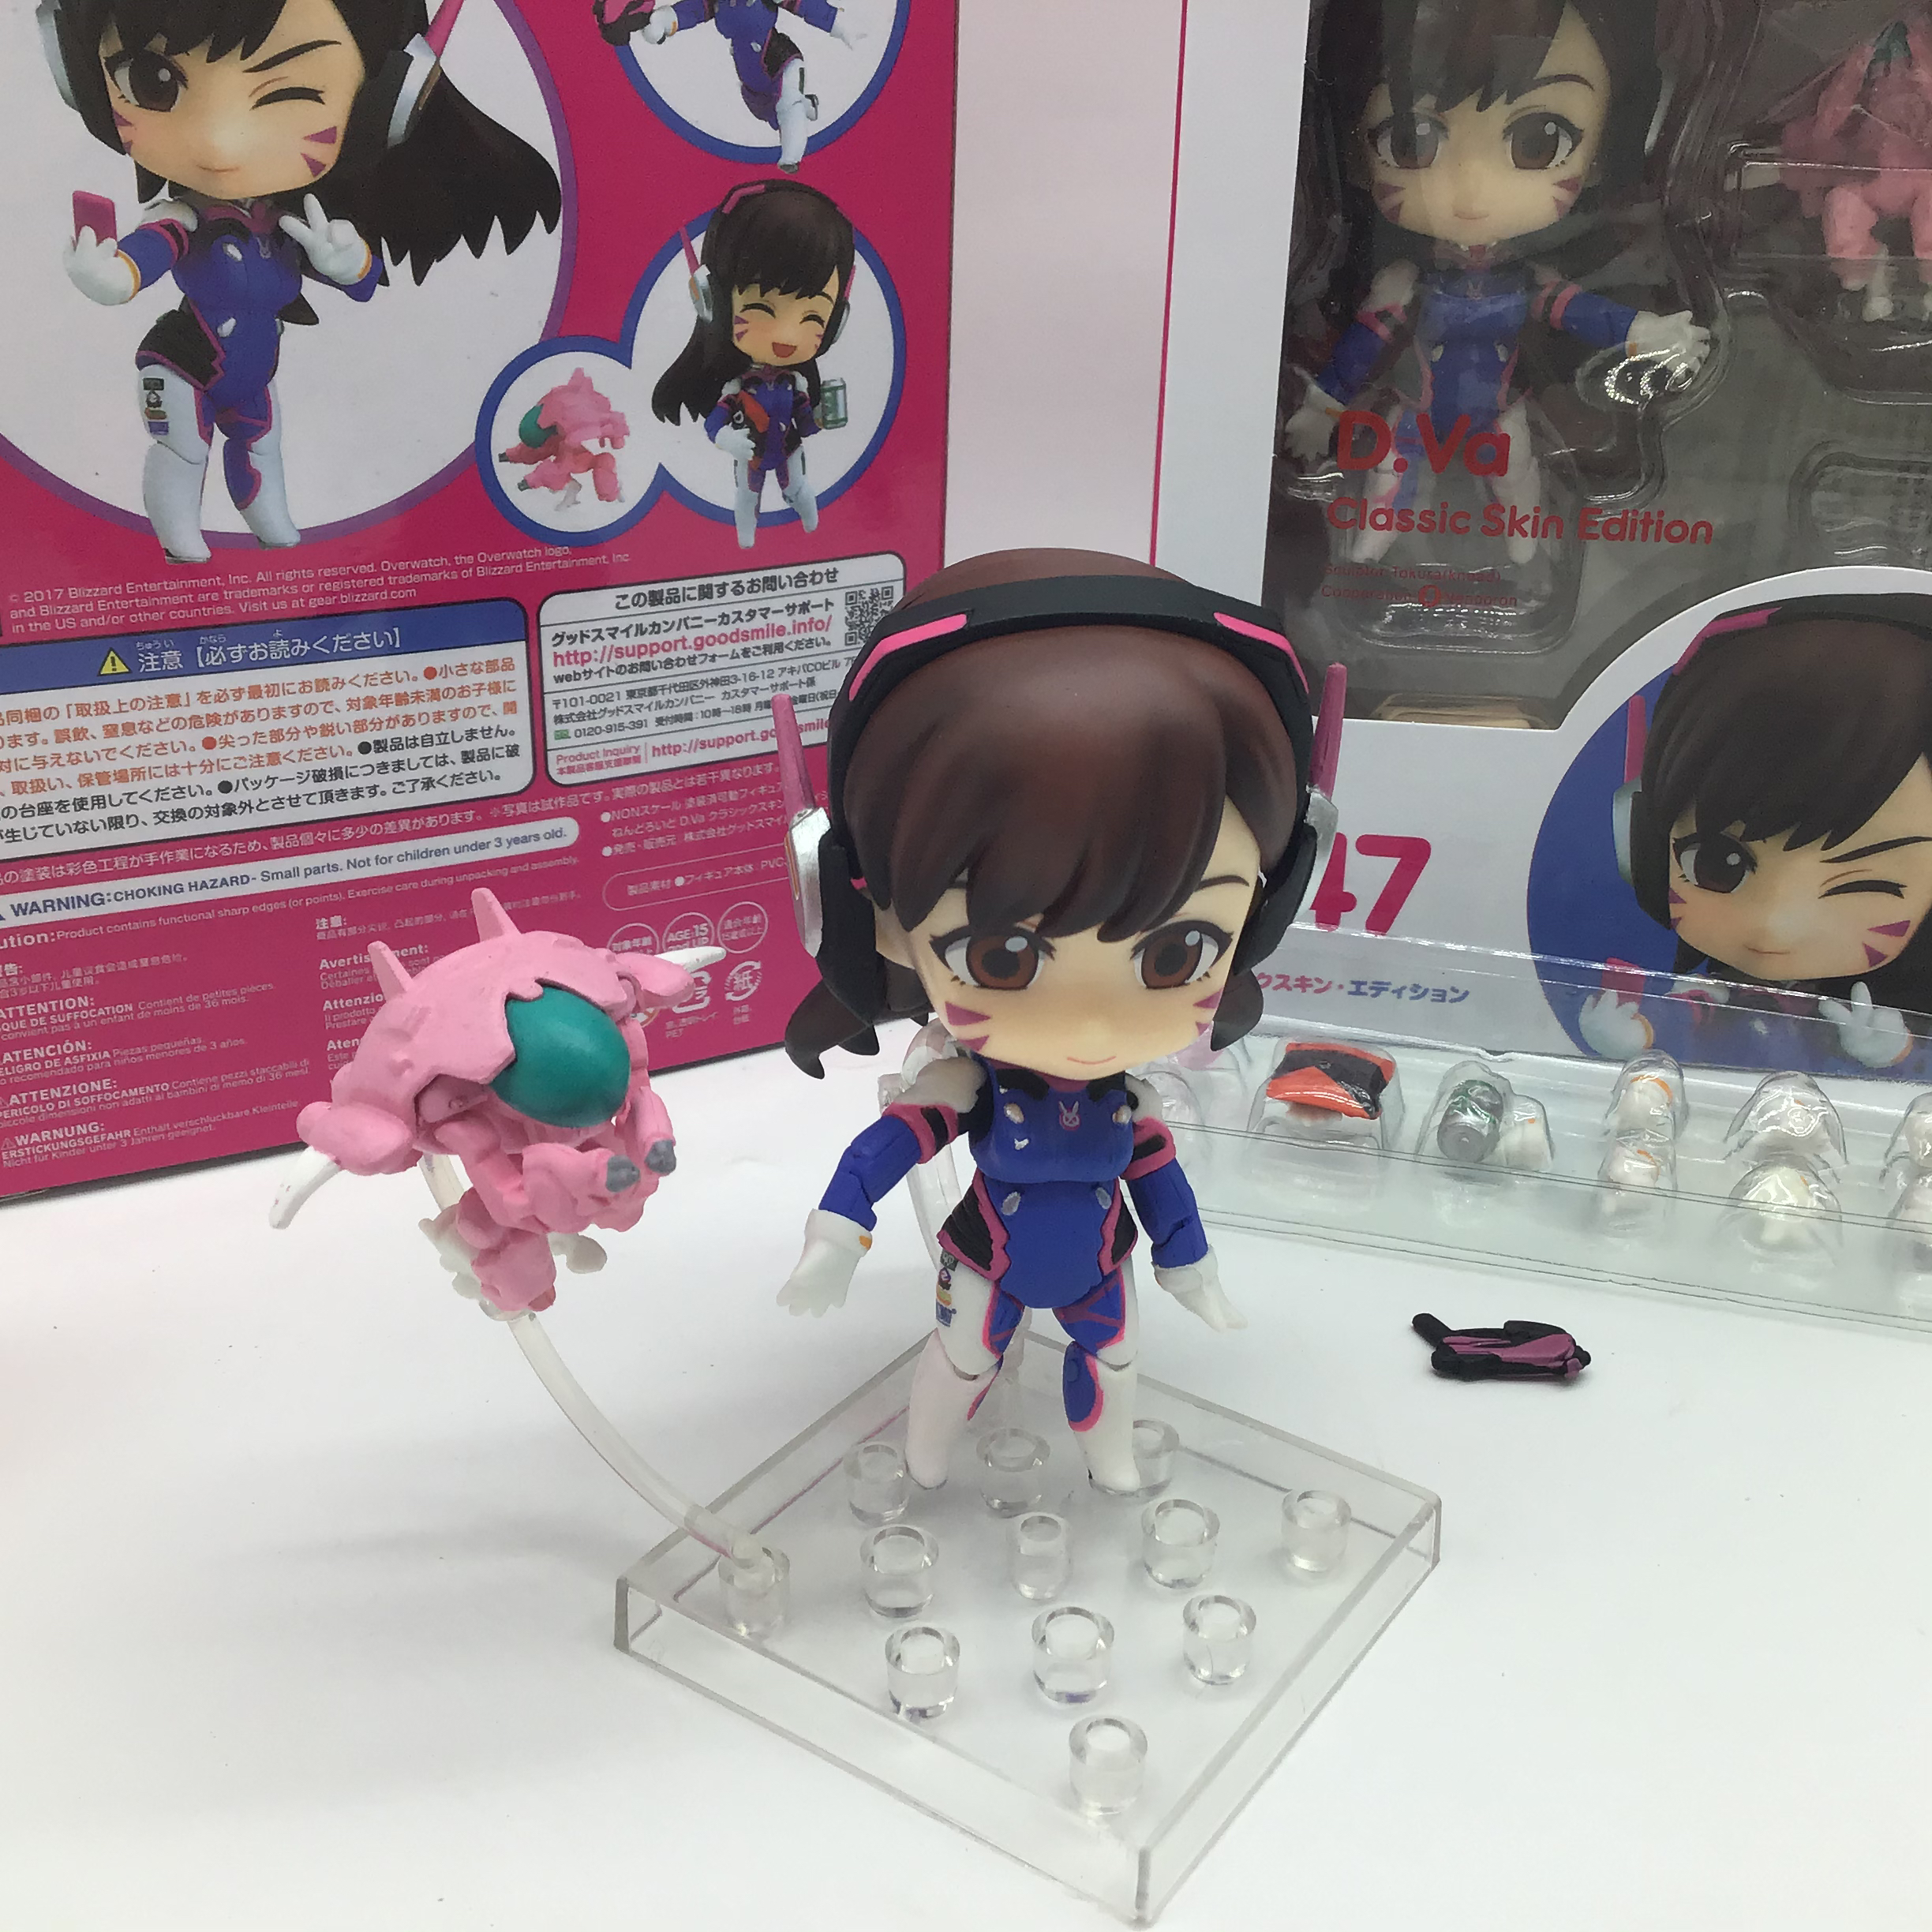 10CM Game Q version Overwatched D.Va 847 # Classic Skin Edition PVC Action Figures Model Toys Gift Doll 5